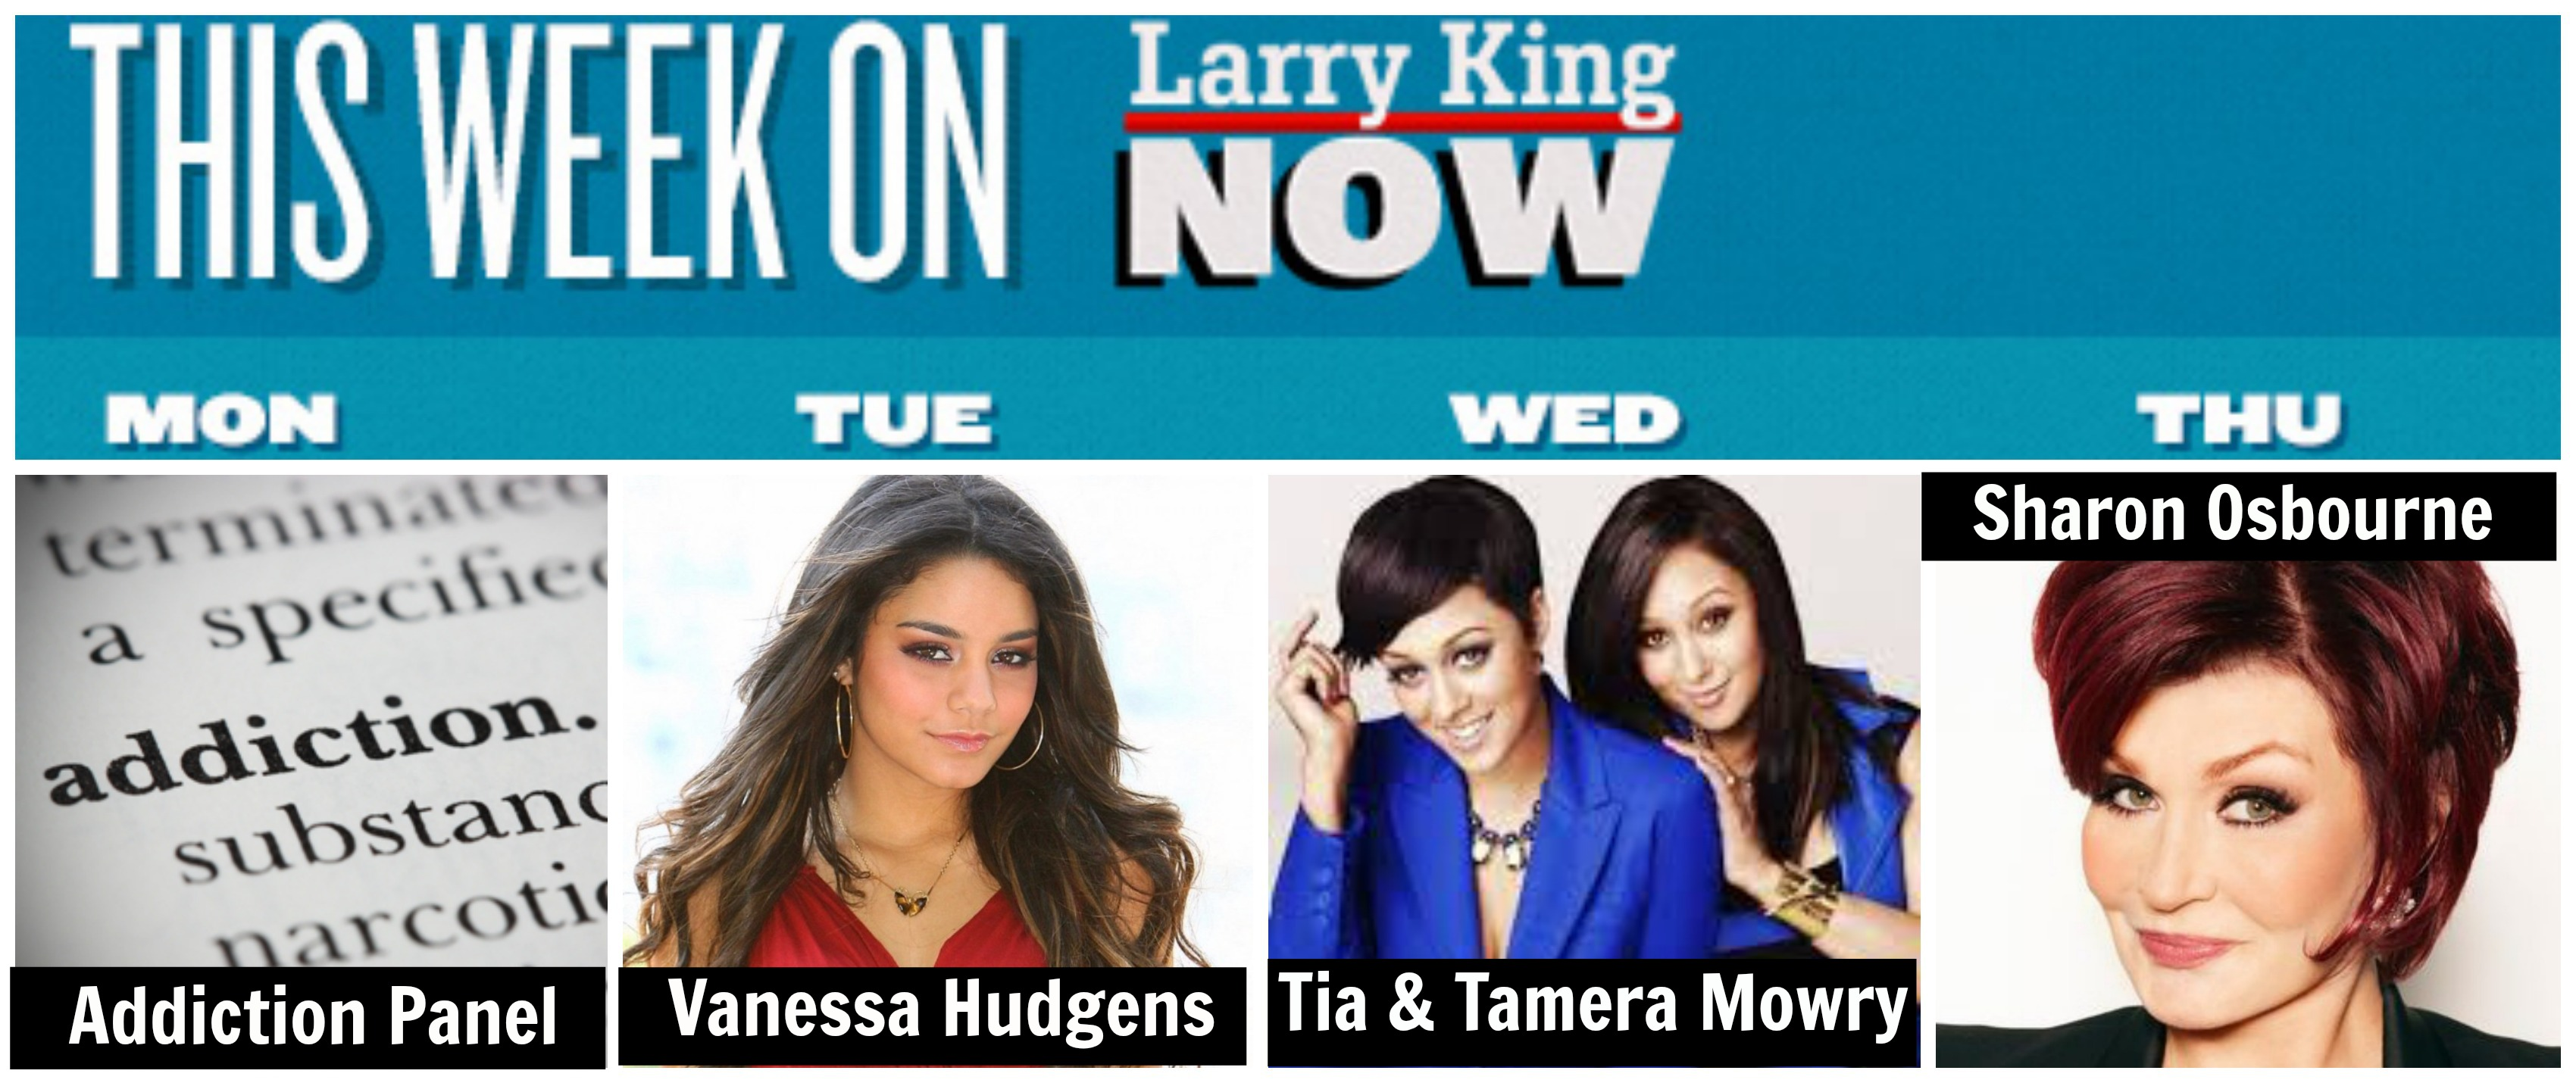 This Week on Larry King Now - Addiction Panel, Vanessa Hudgens, Tia & Tamera Mowry, Sharon Osbourne